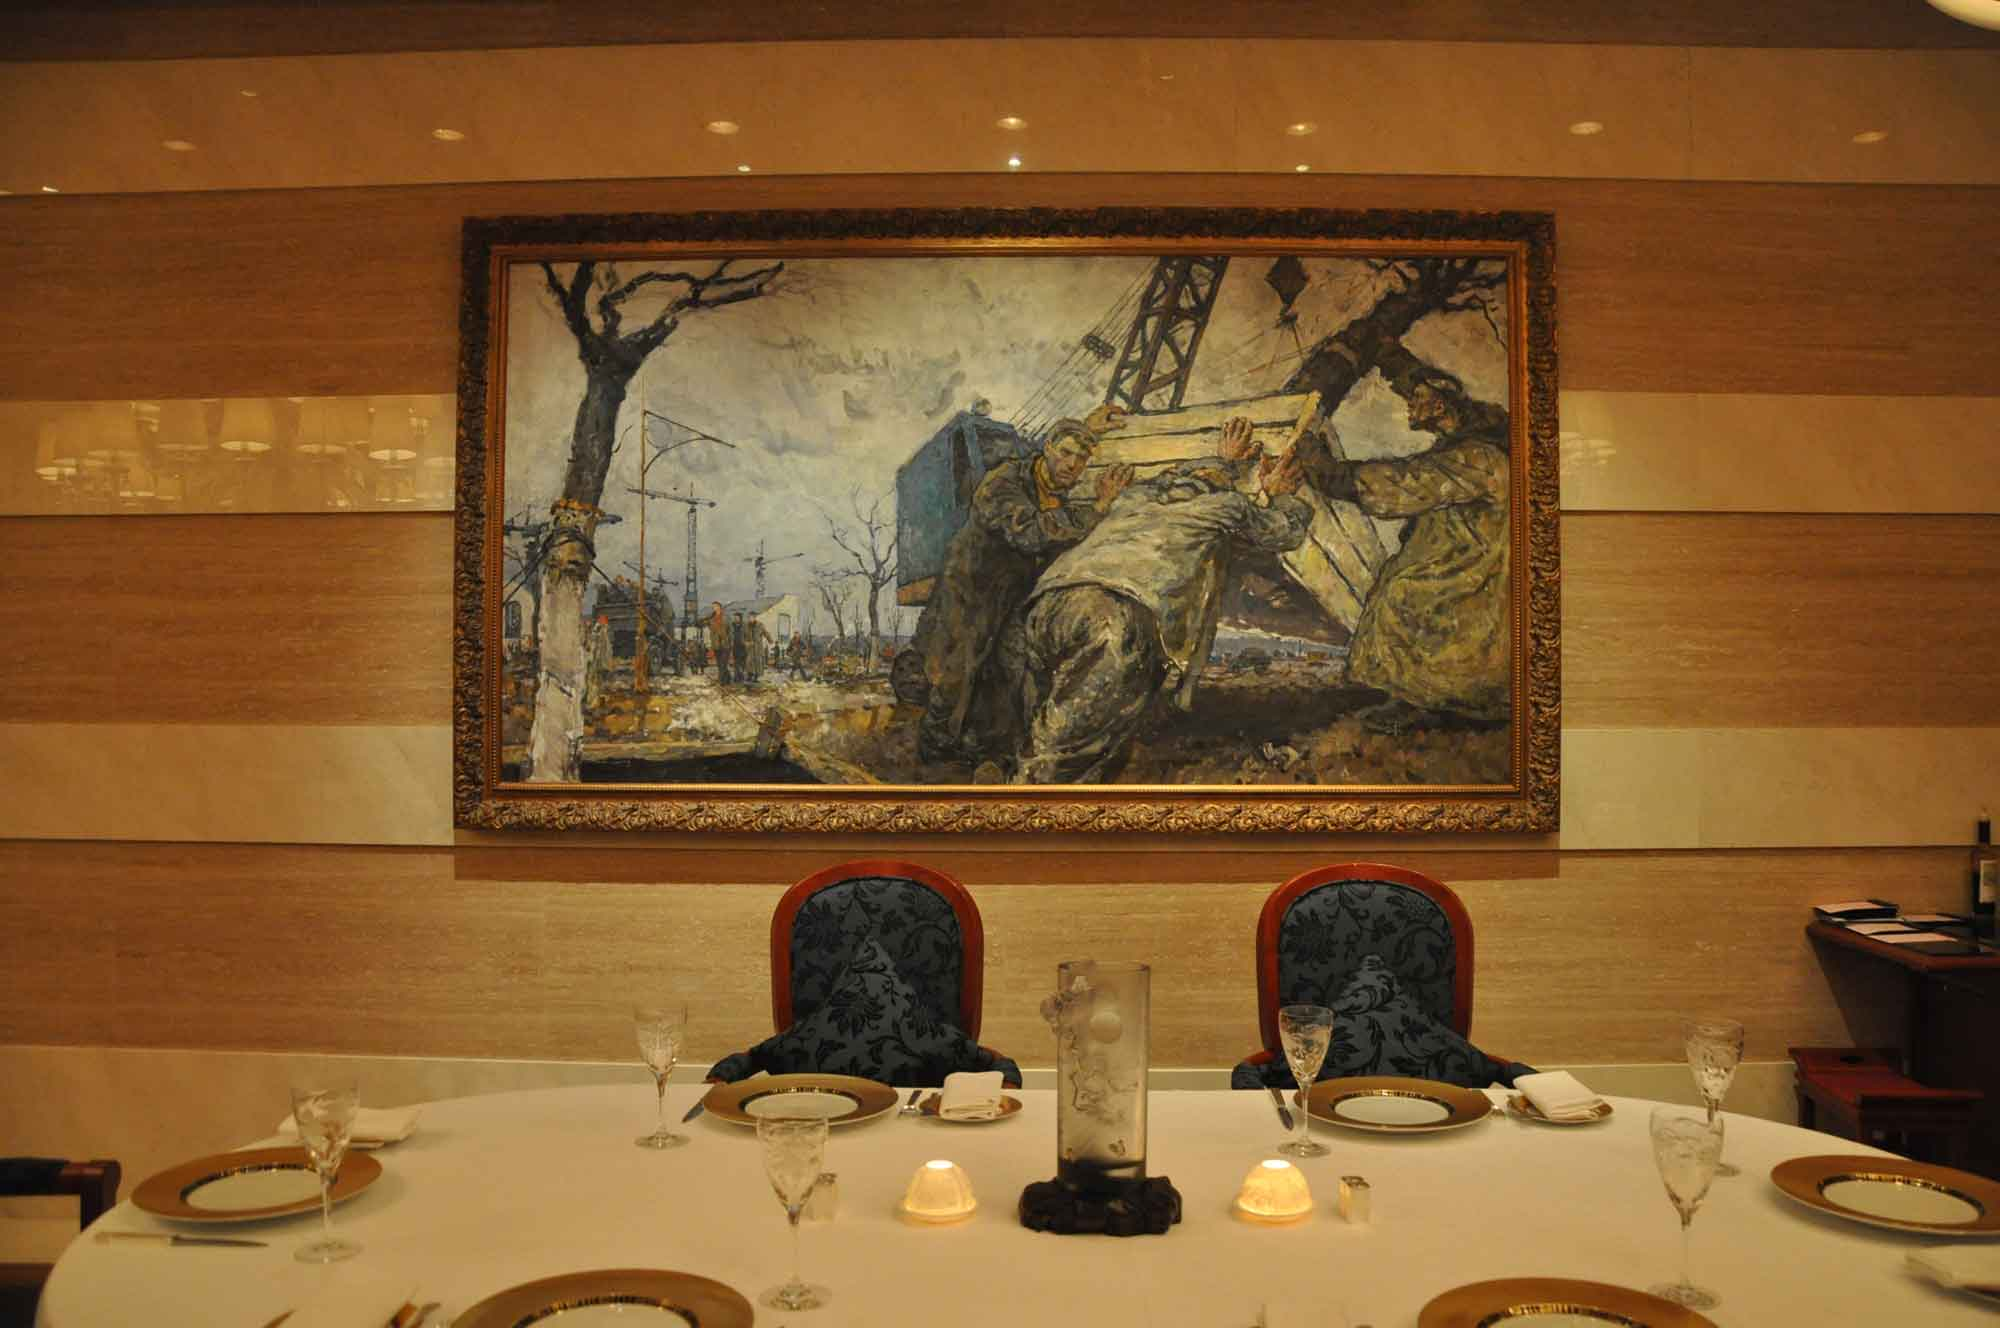 Casa Don Alfonso Macau painting and table